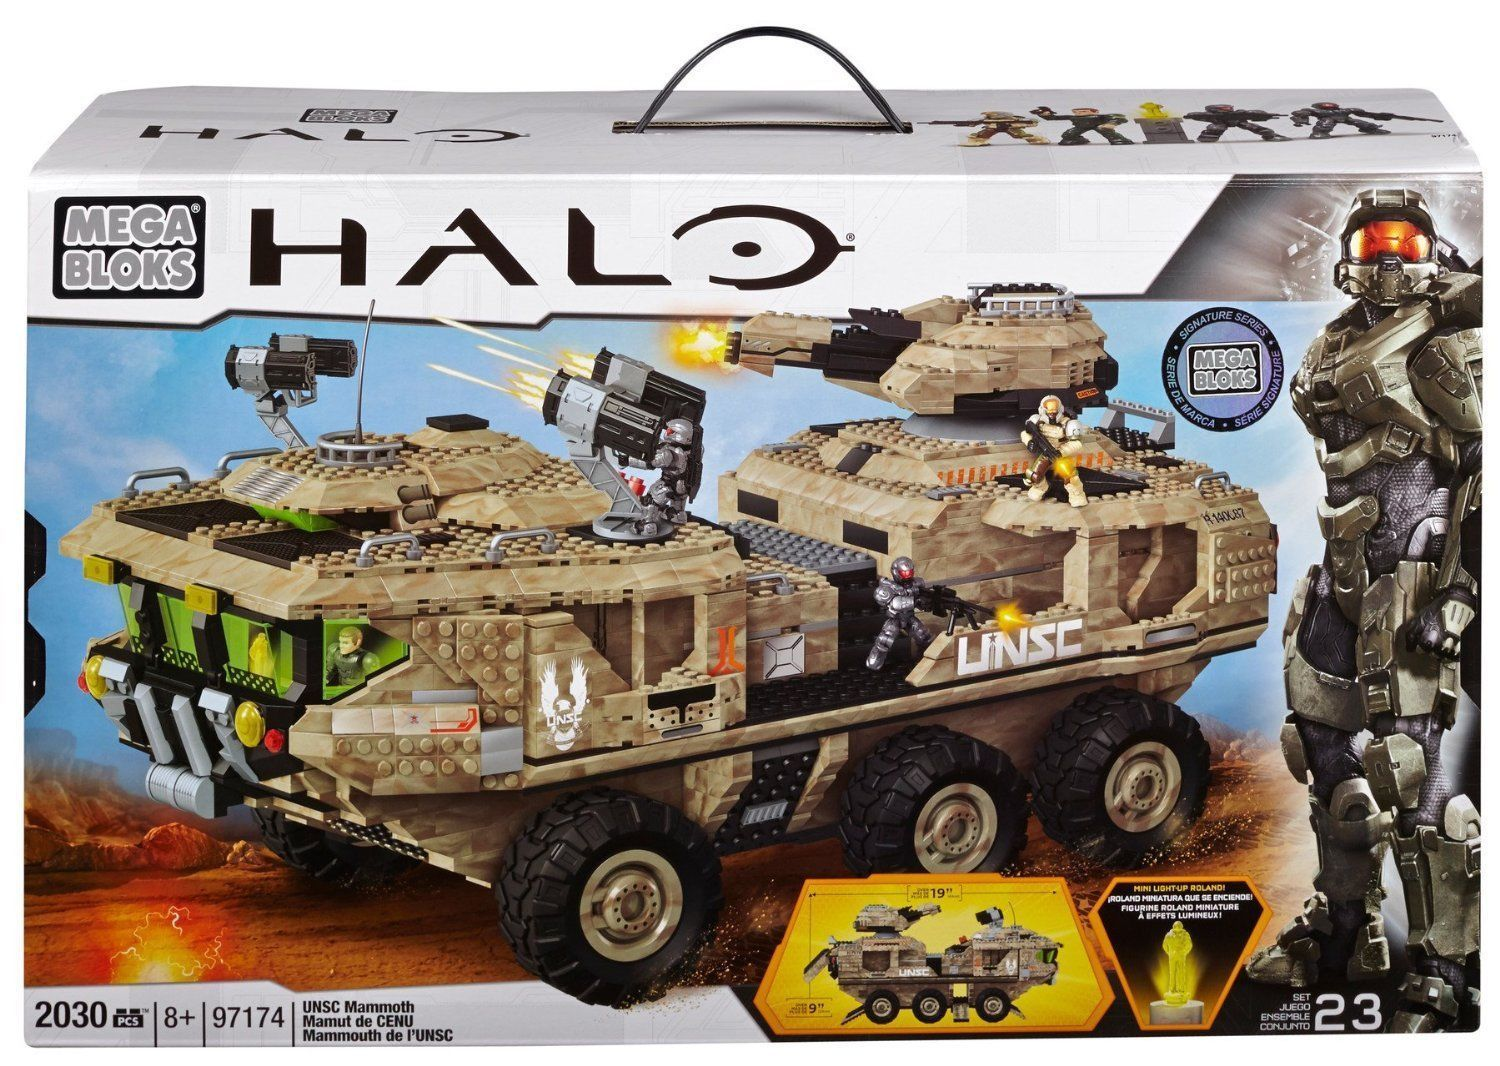 UNSC Mammoth officially licensed Mega Bloks Halo product at B.A. Toys.